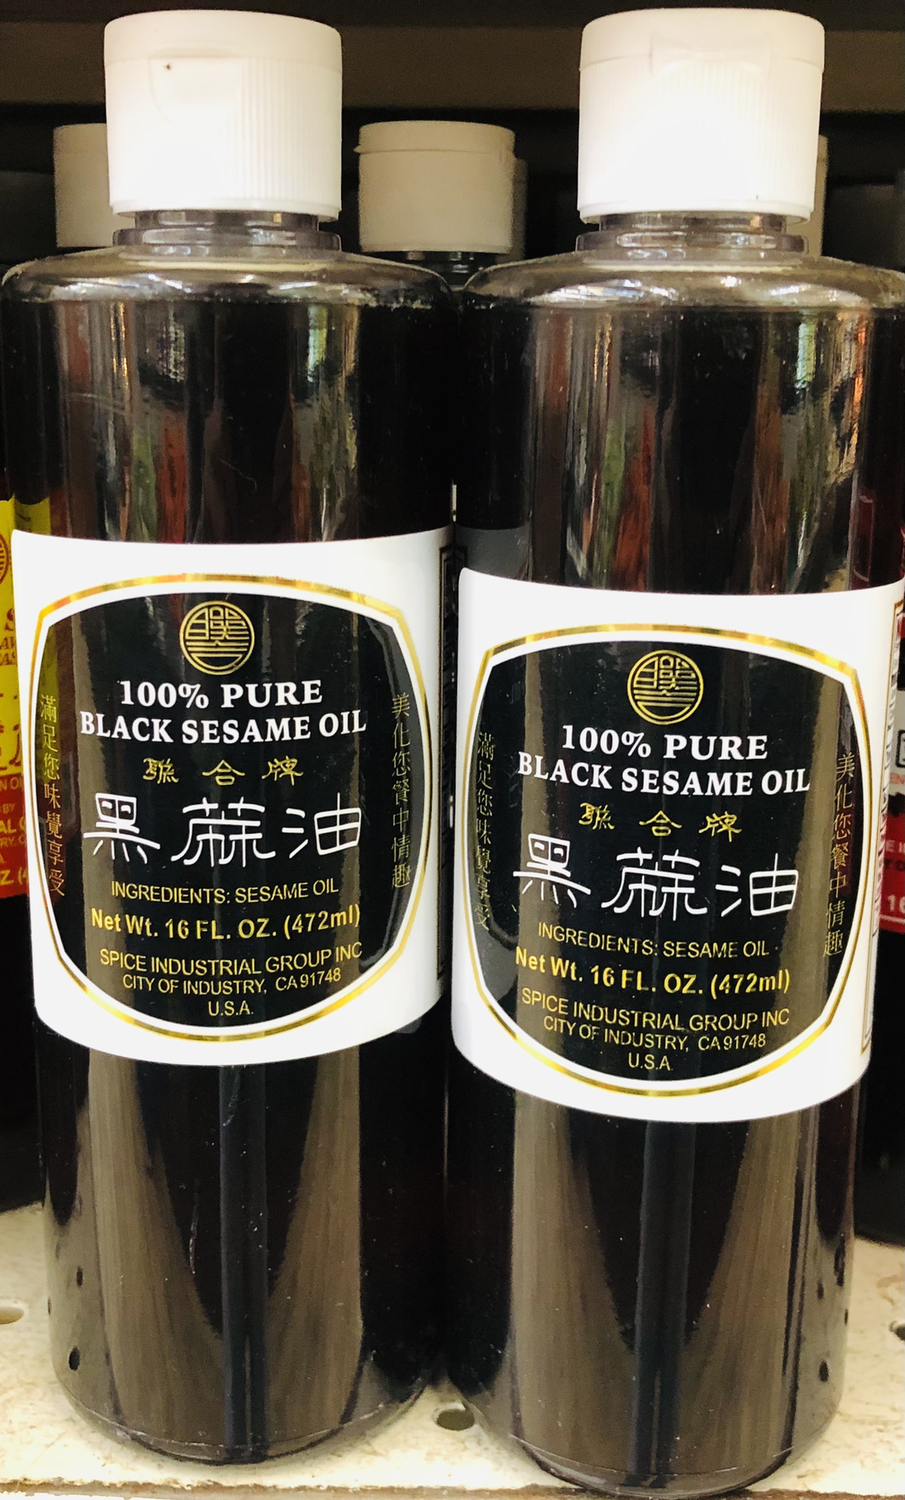 联合牌 黑麻油 LIAN HOW BRAND 100% PURE BLACK SESAME OIL 16 FL.OZ. (472ml)